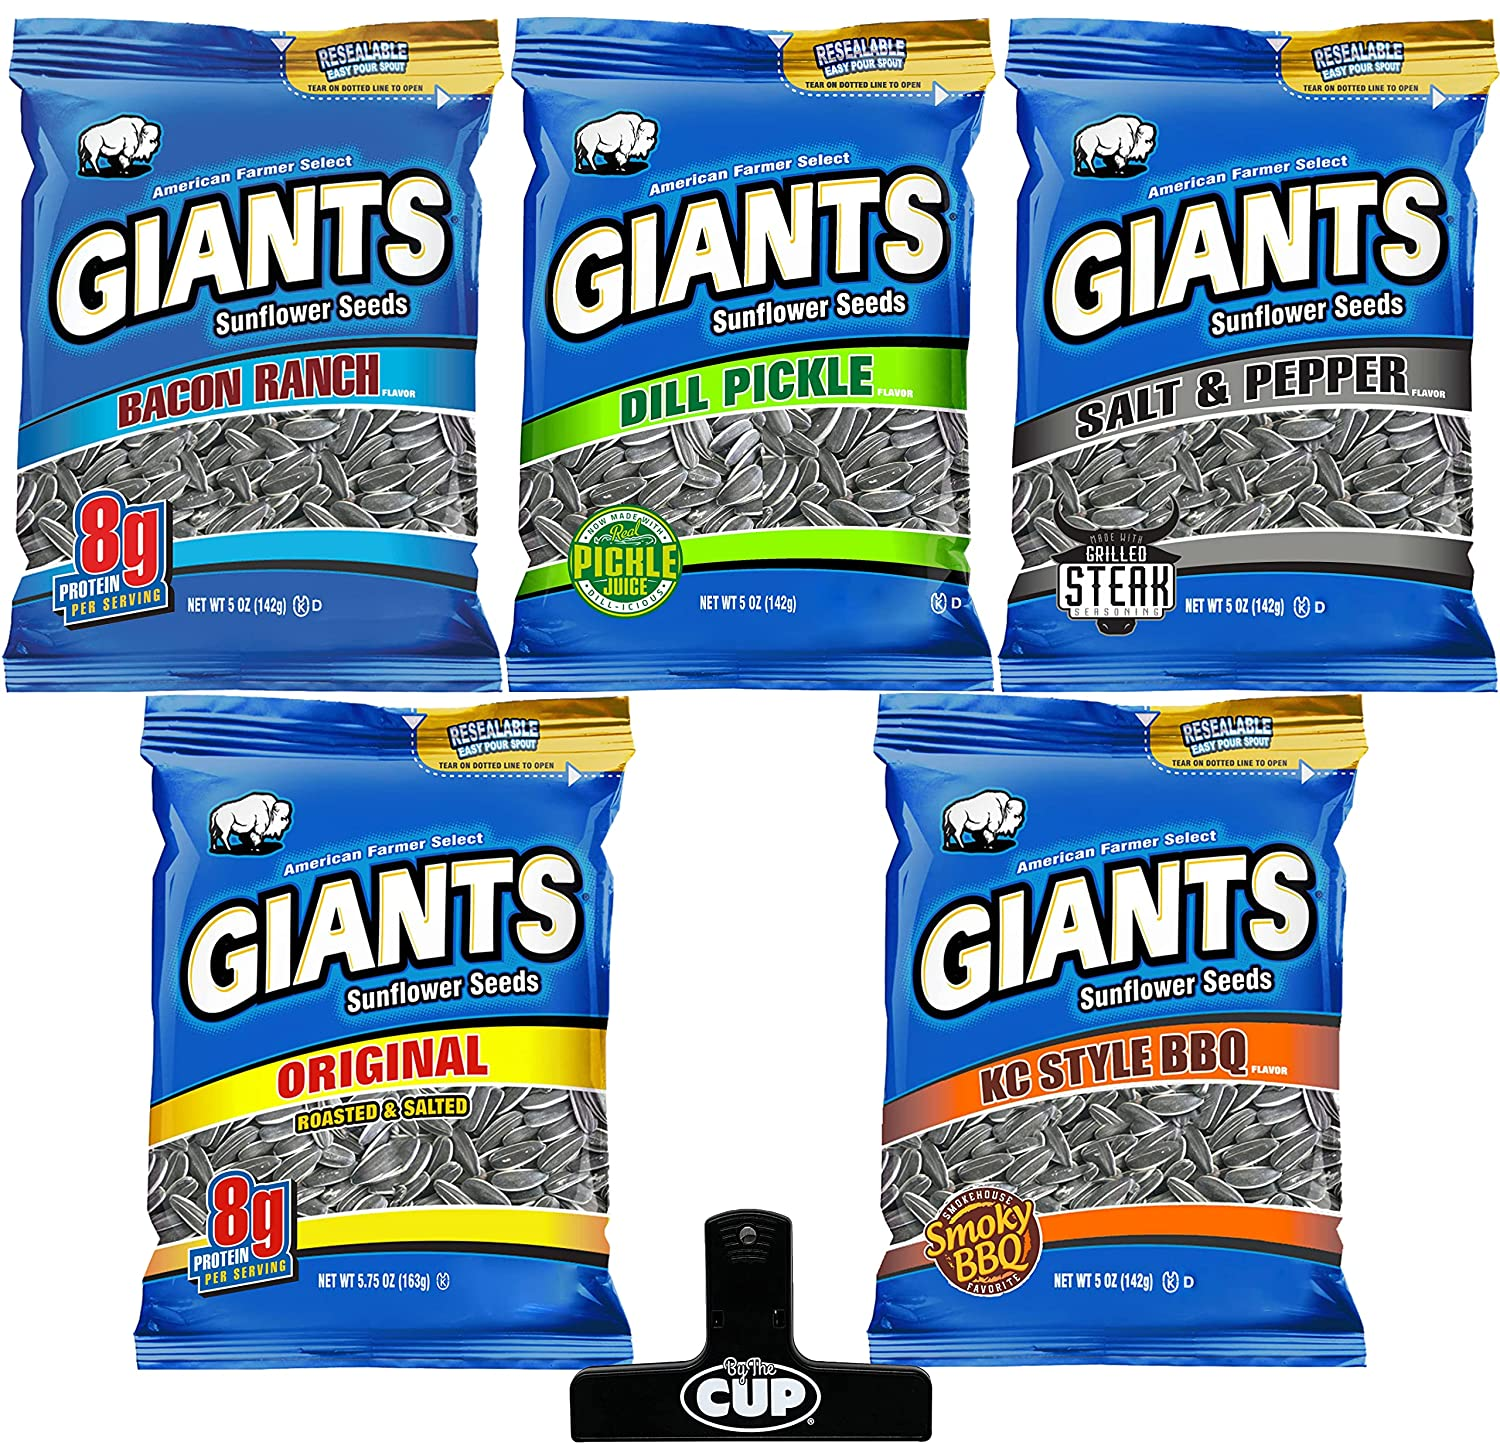 Giants Sunflower Boston Mall 1 year warranty Seeds 5 Flavor Variety 1 of each Pack